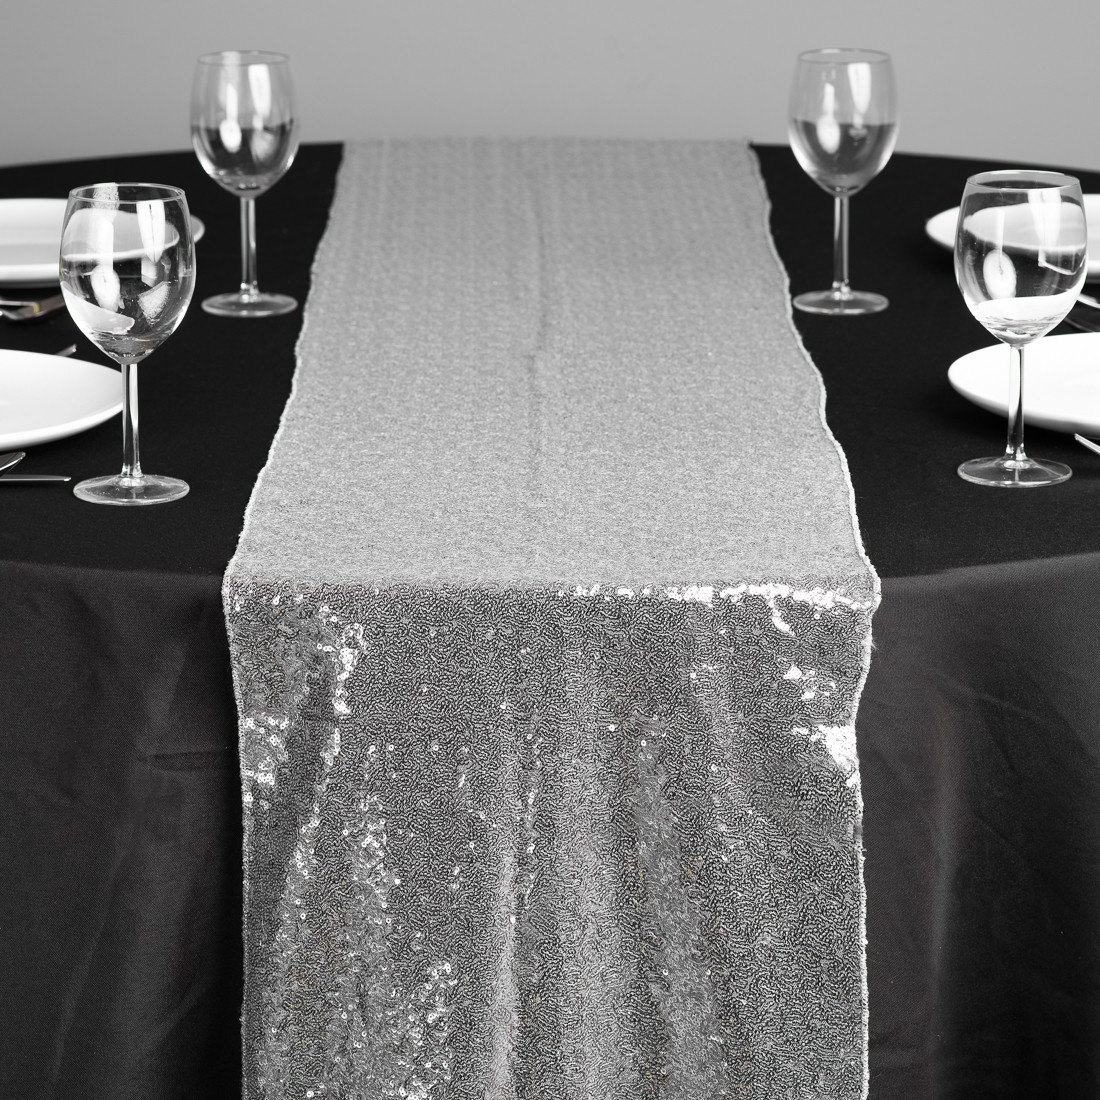 15 x 120 silver table runners sparkly table by weddingbyshane. Black Bedroom Furniture Sets. Home Design Ideas